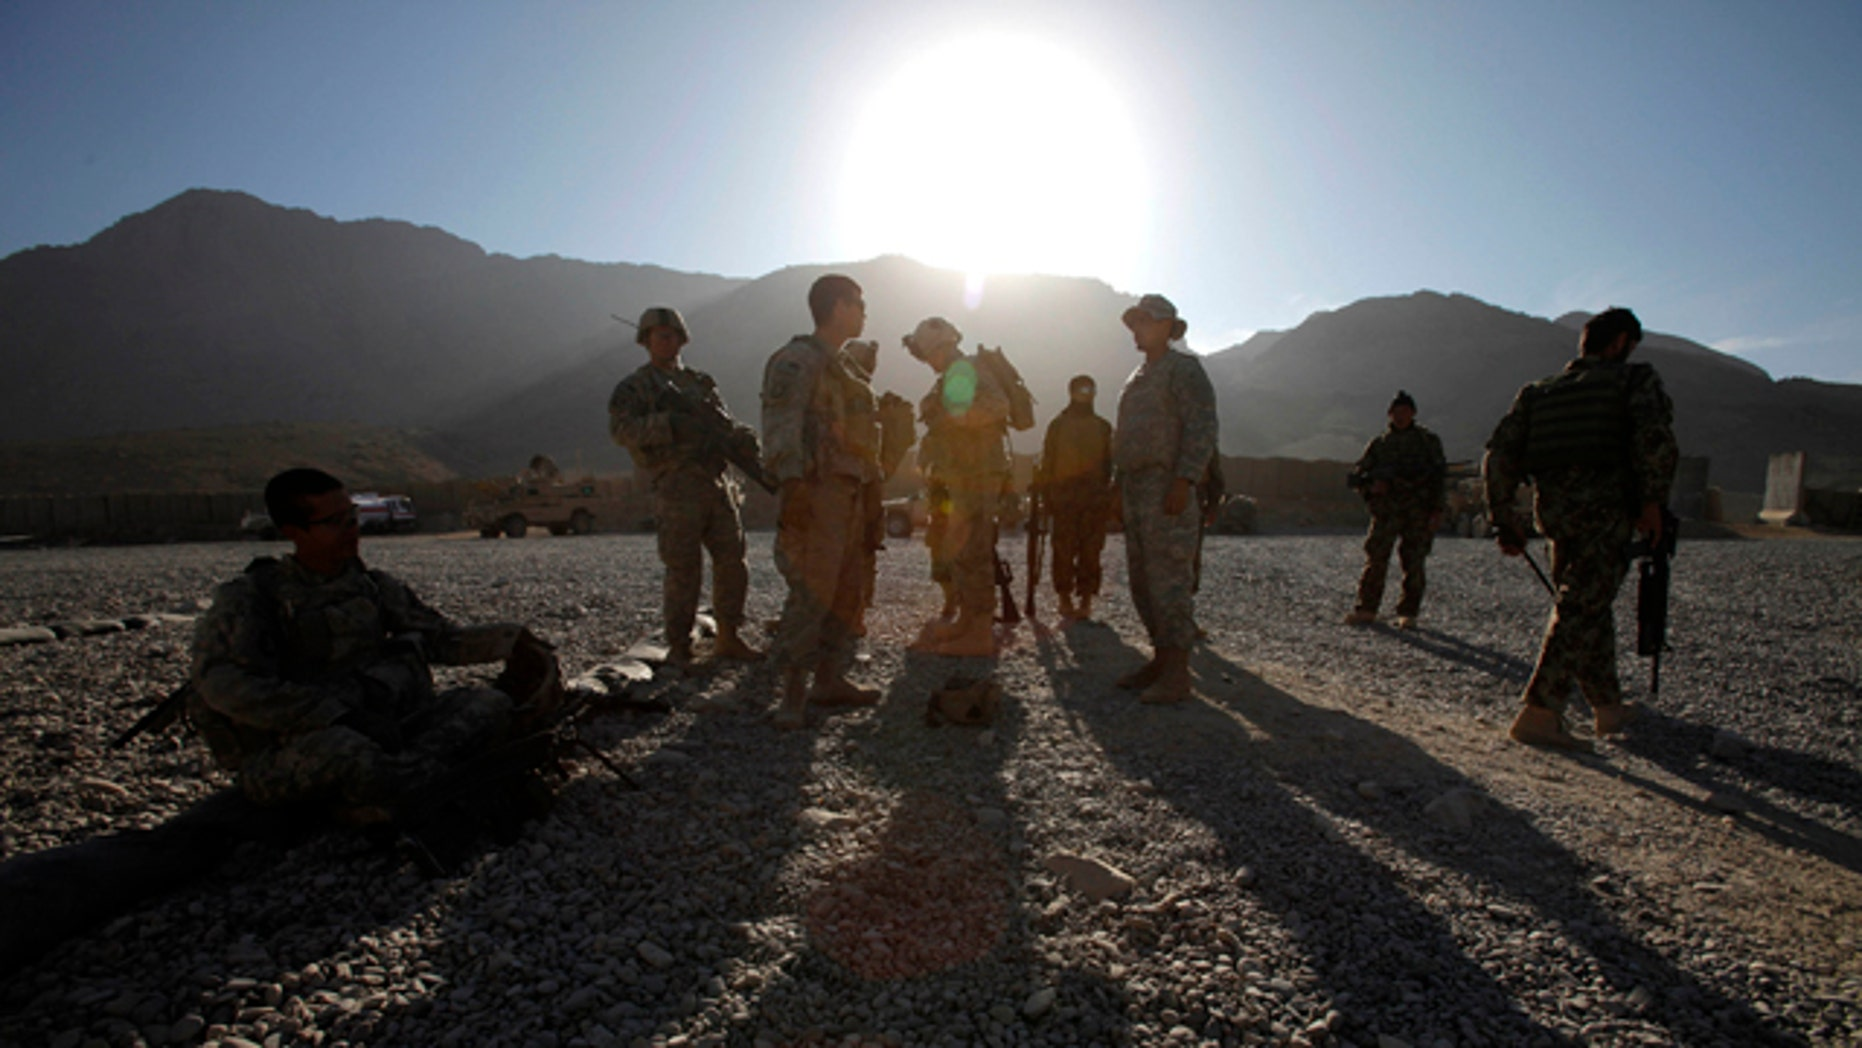 Nov. 22: U.S. Army soldiers and Afghan policemen prepare themselves for a foot patrol in West Now Ruzi village, district Panjwai, in Afghanistan.